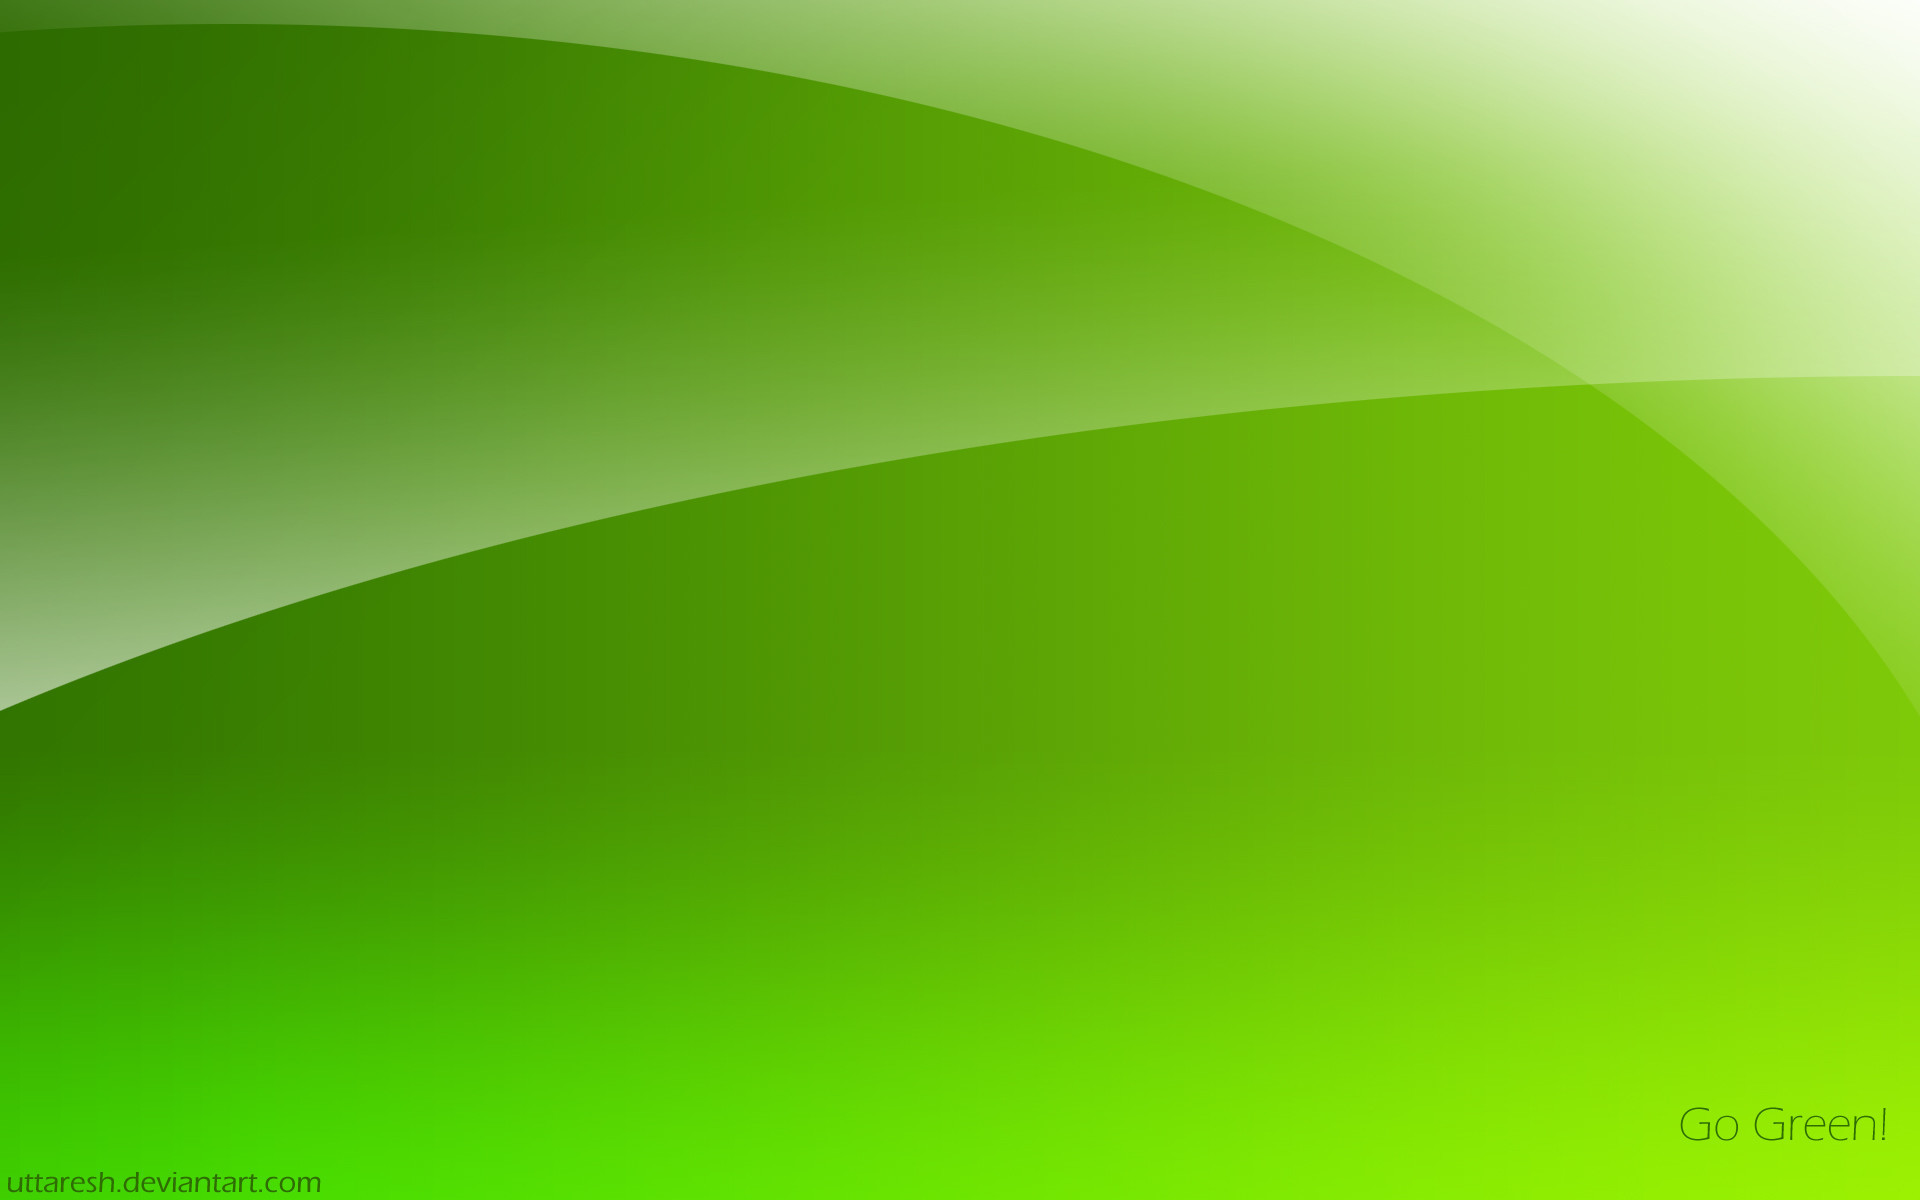 1920x1200 1920x1080 VJ looping animated bright green and black CG abstract background